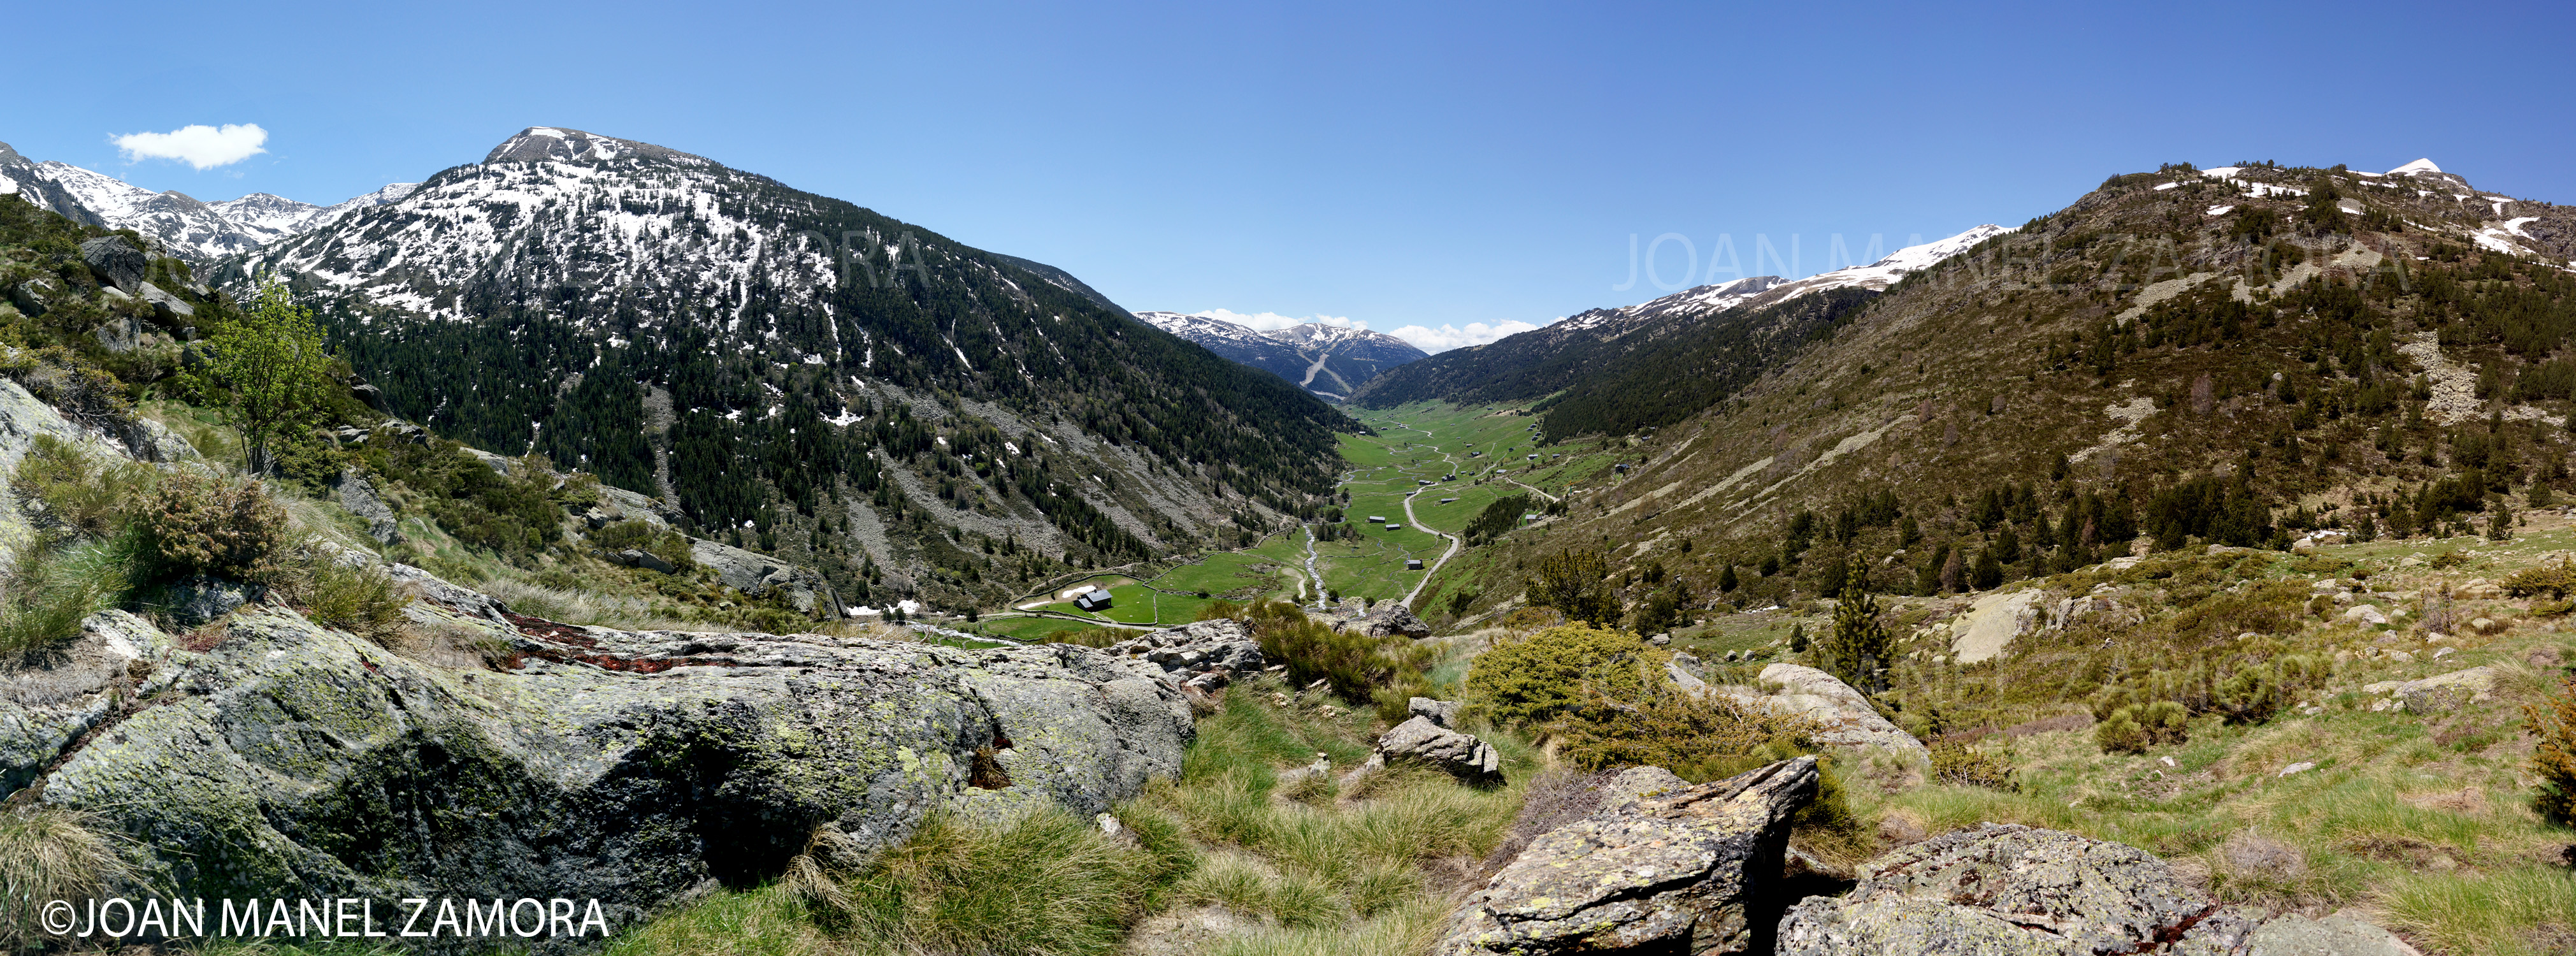 03079 VALL D'INCLES-FINE ART